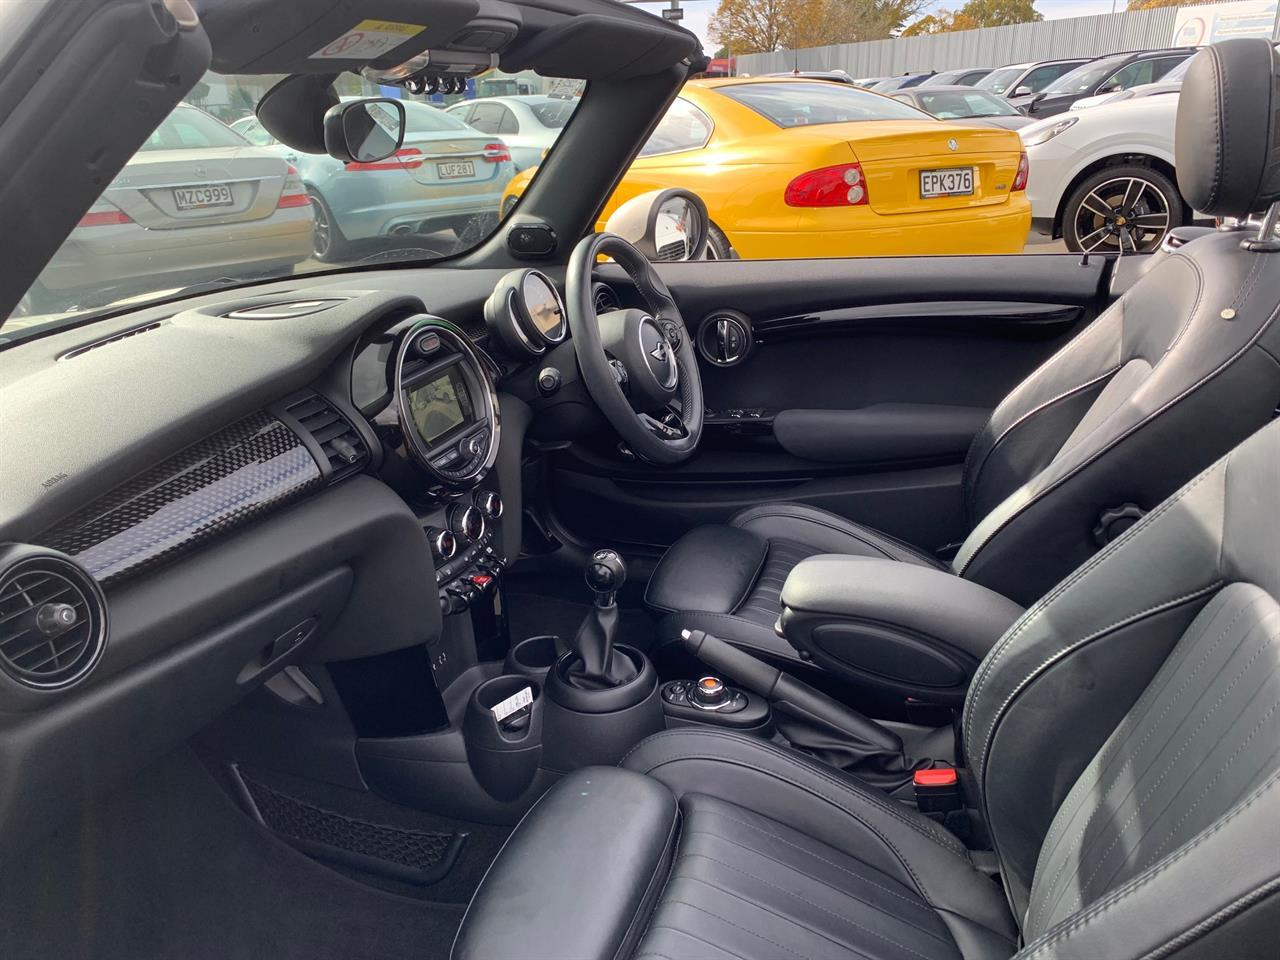 image-5, 2018 Mini Cooper S 2.0T 6 Speed Manual Cabriolet N at Christchurch